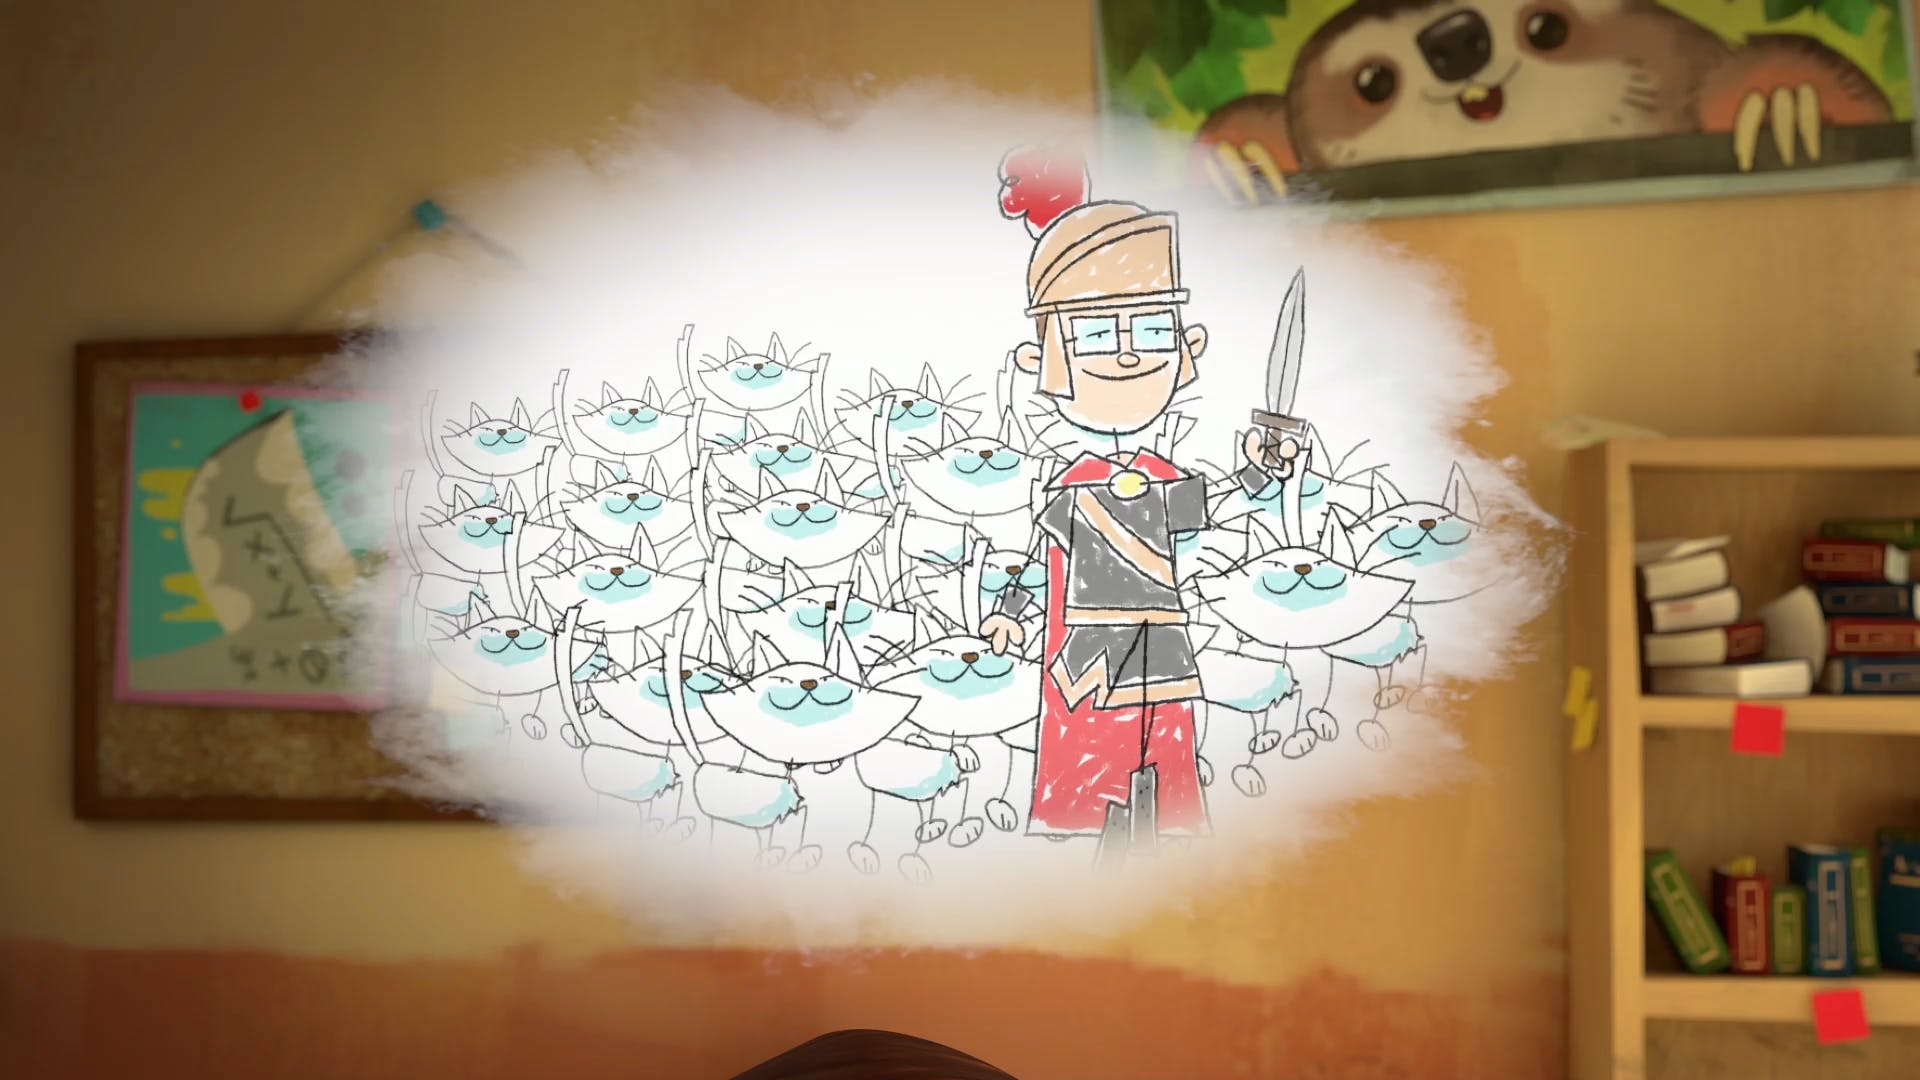 Walter and his cat army